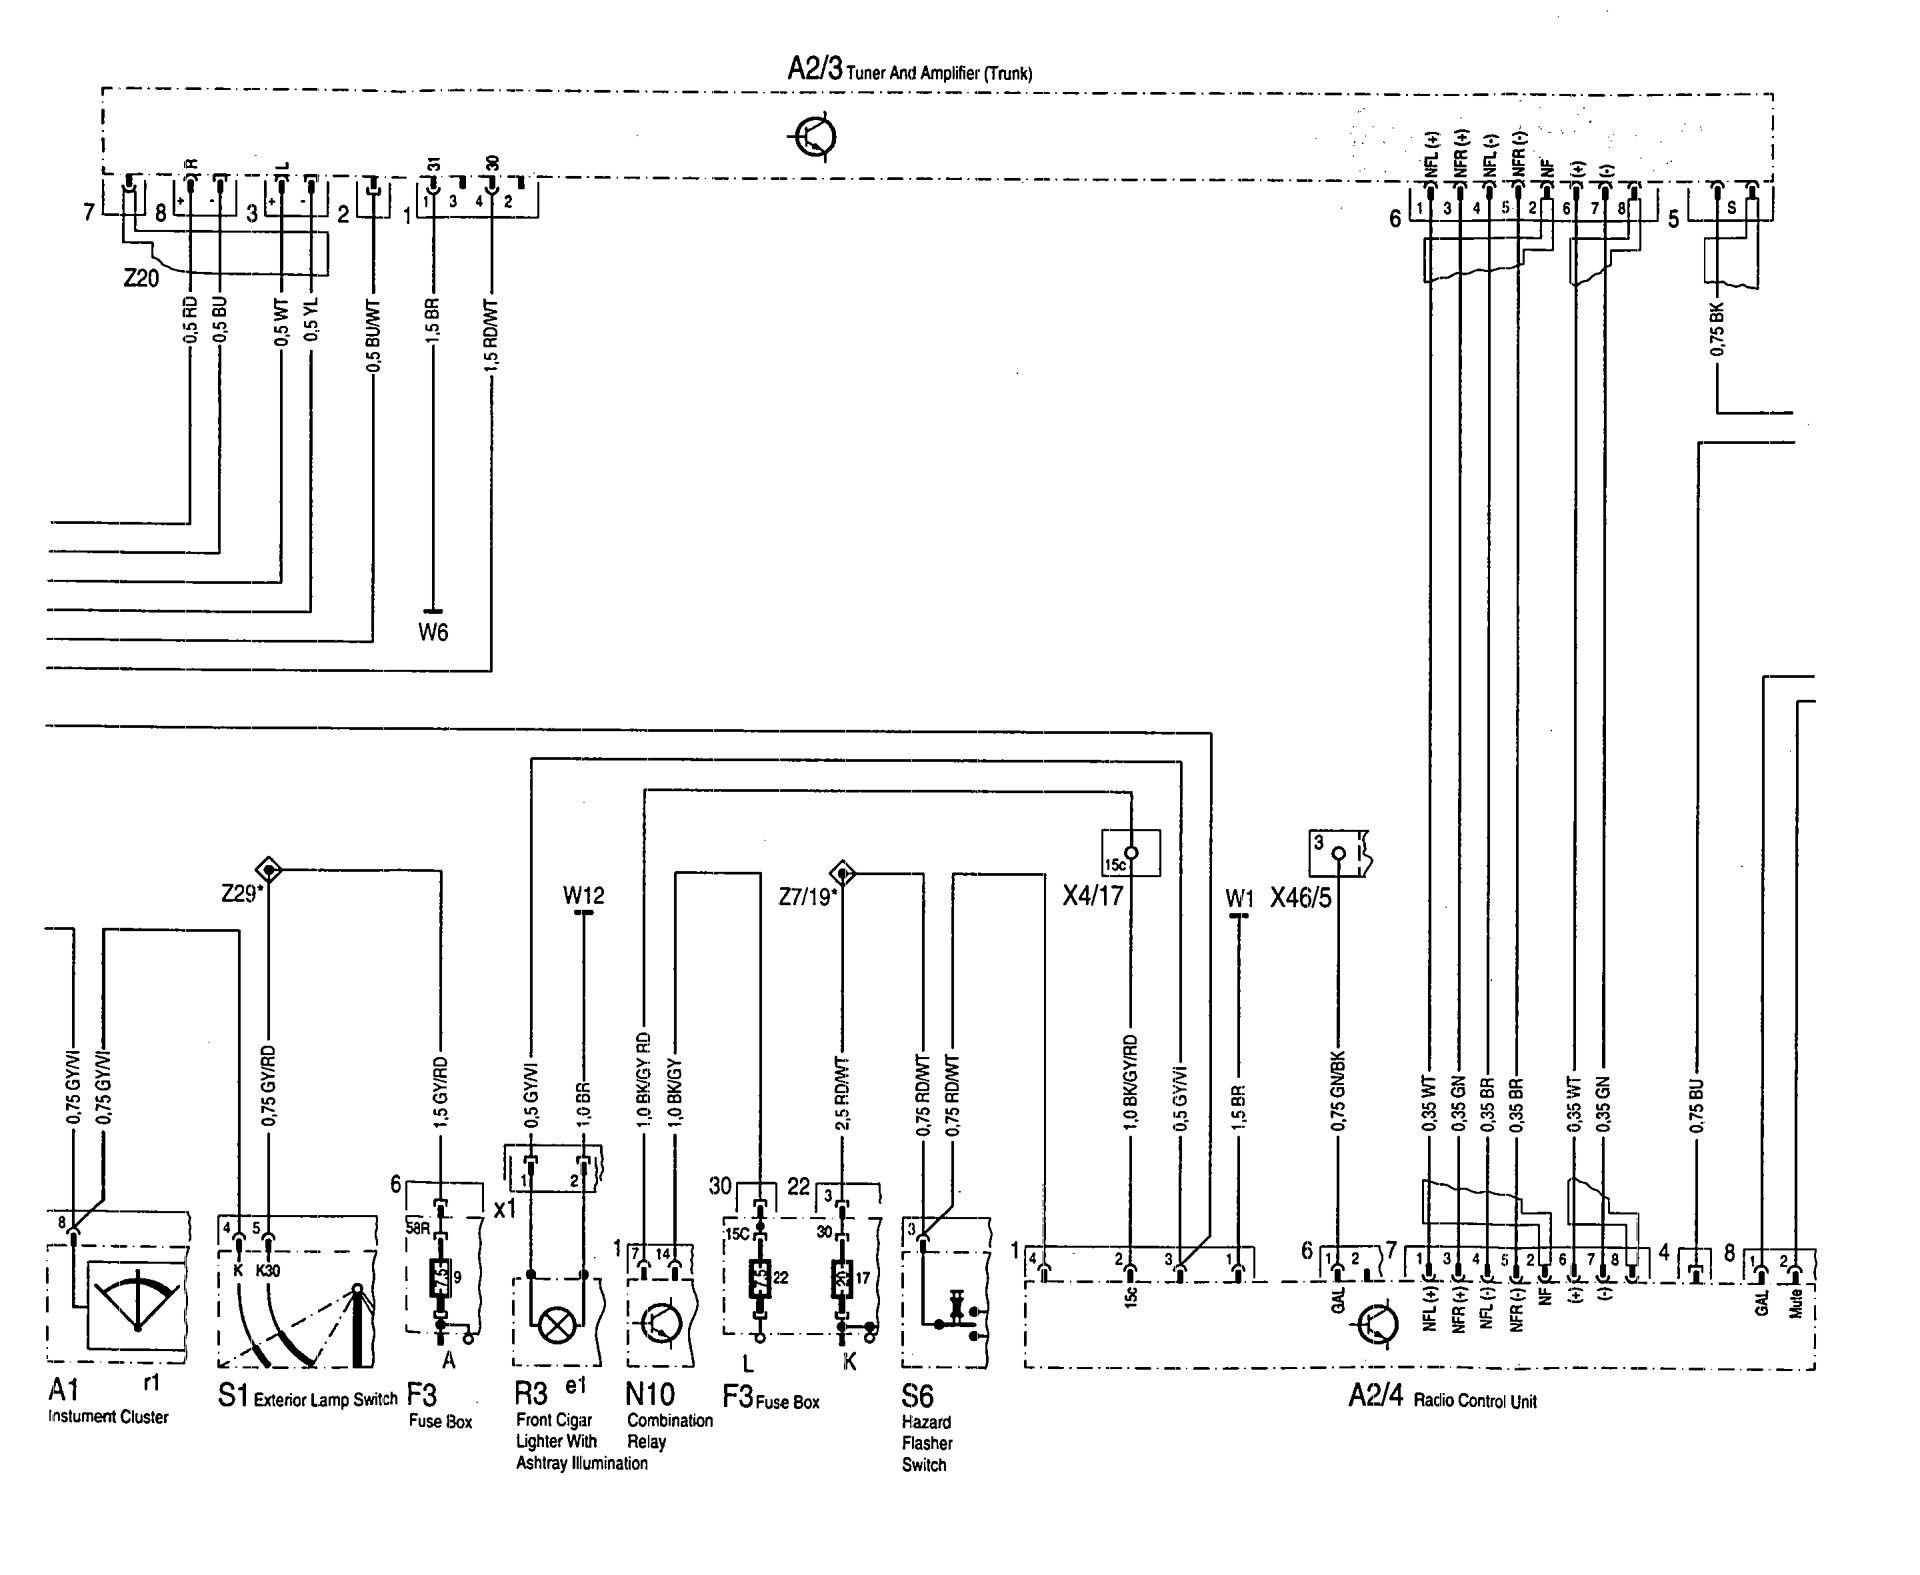 Wiring Diagram Mercedes Audio 20 : Mercedes benz sl wiring diagrams audio